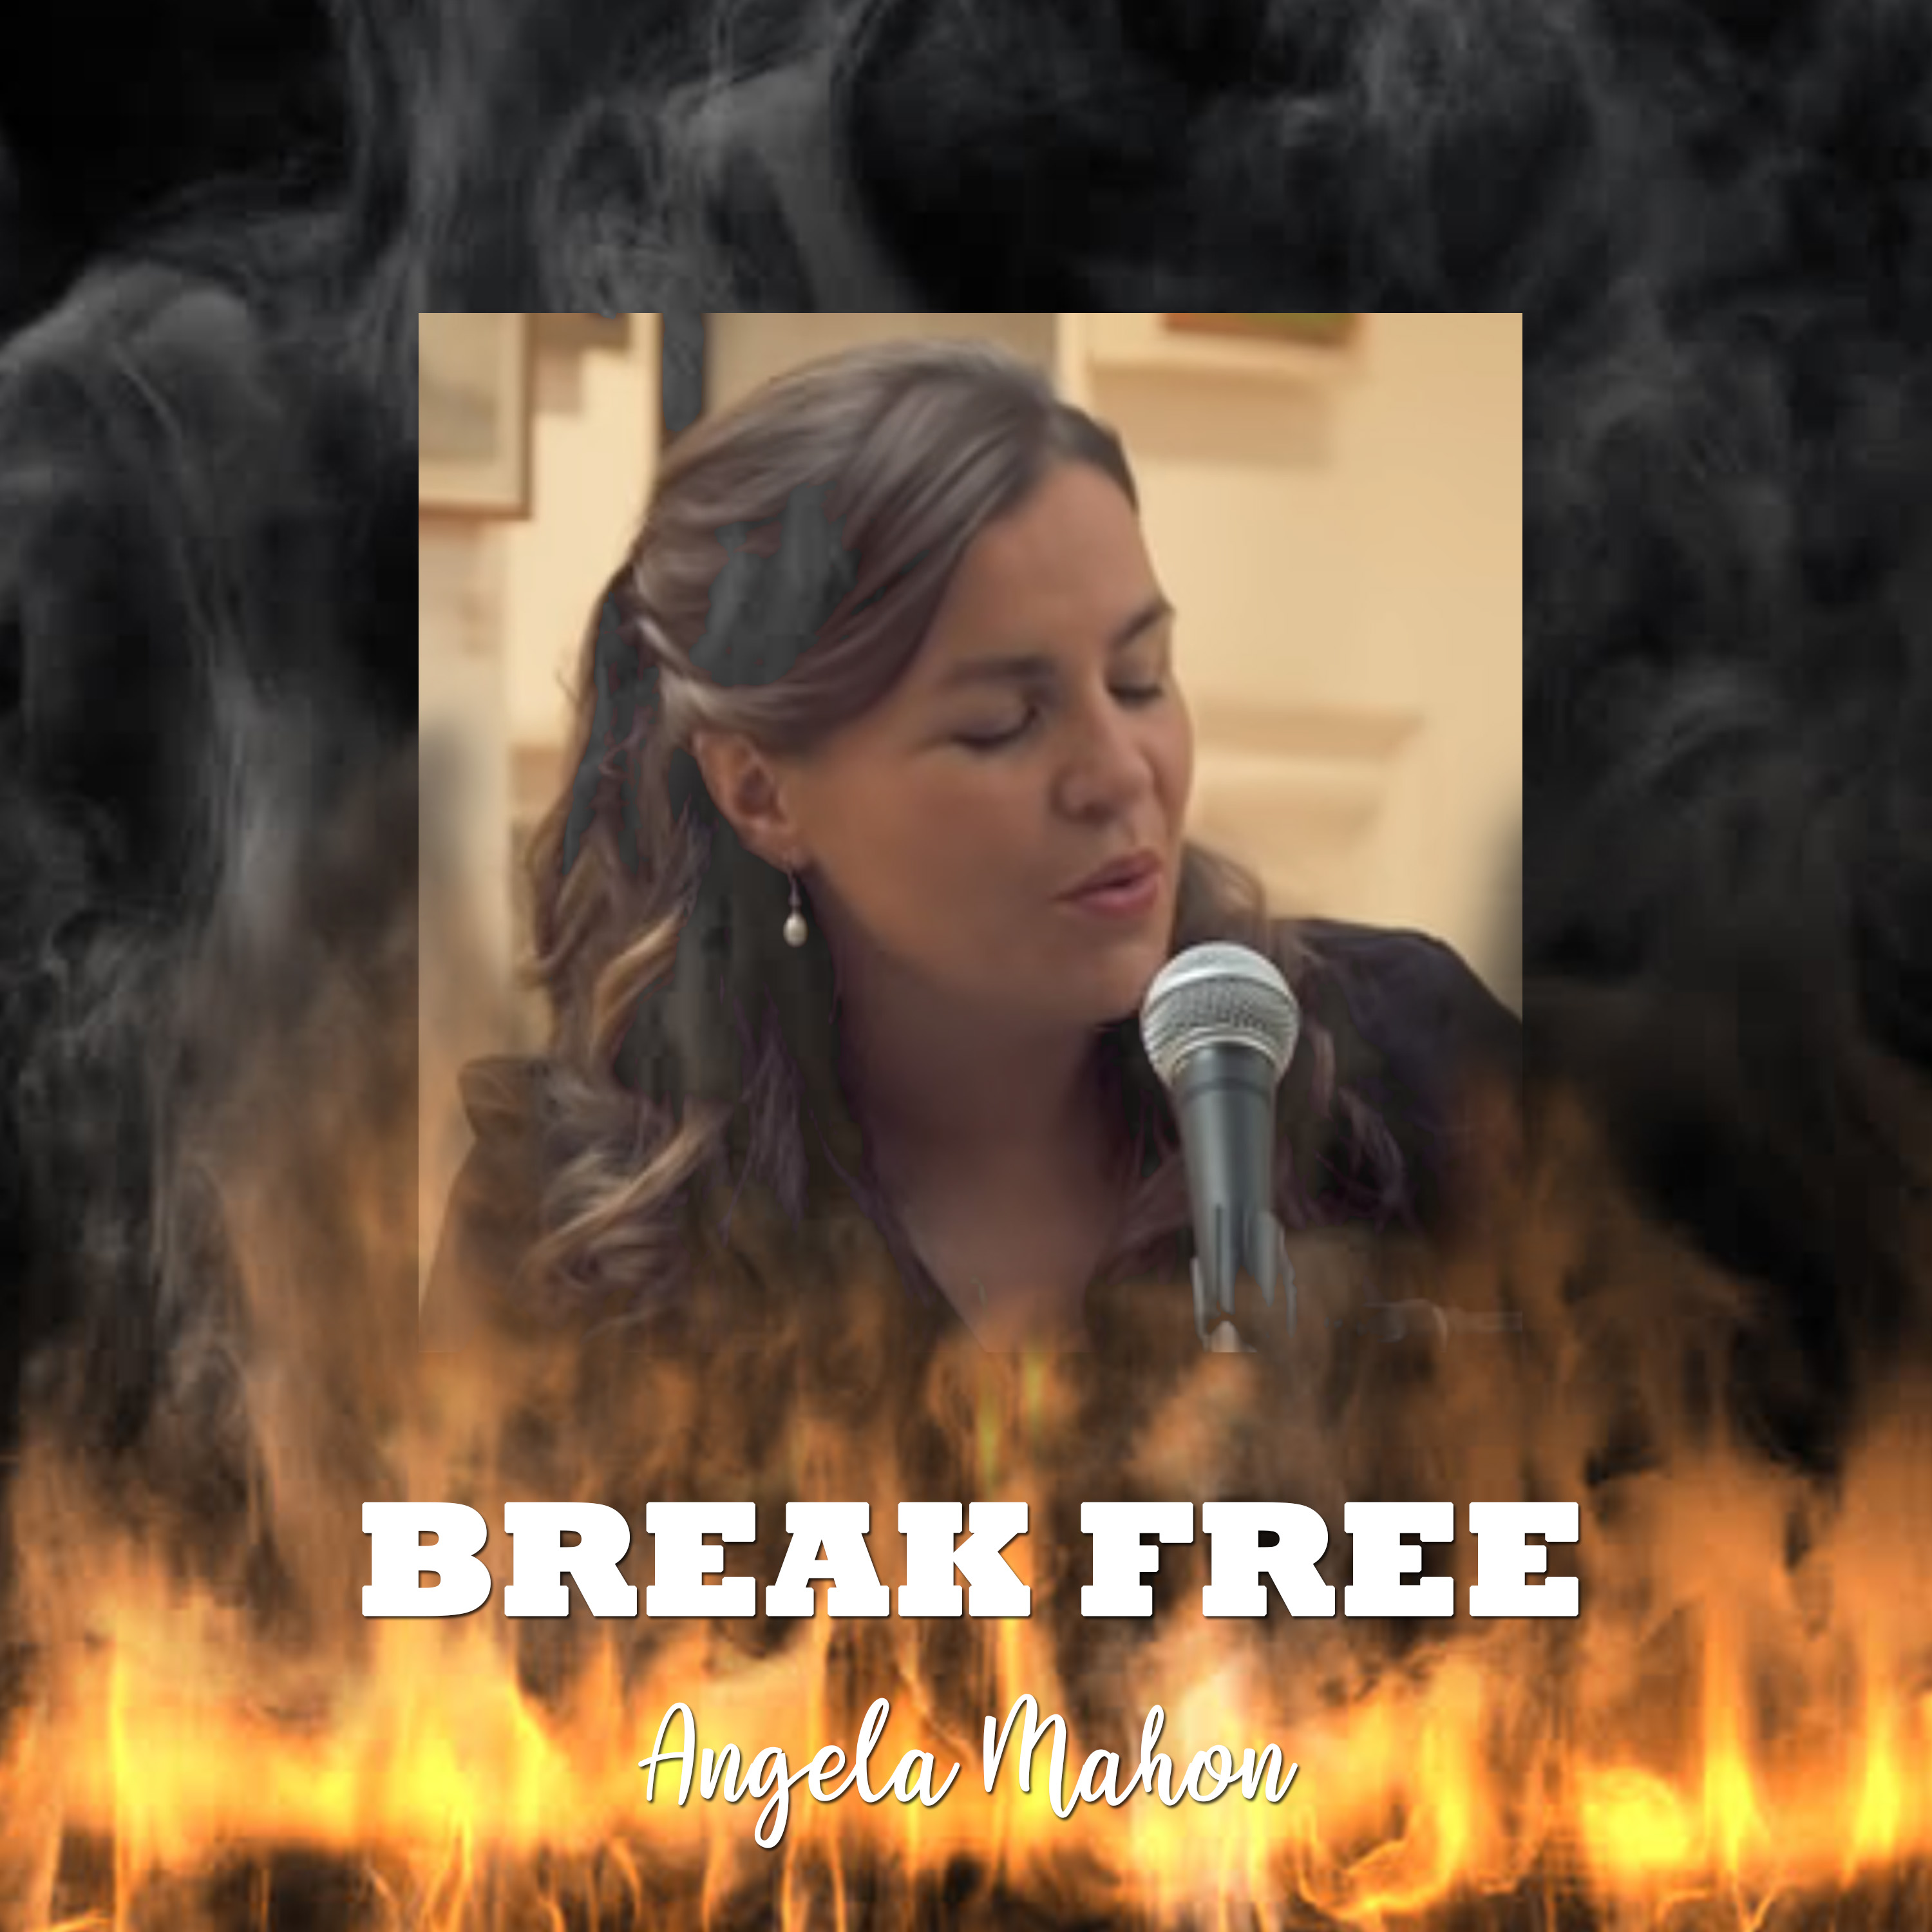 BREAK_FREE_Artwork.jpg